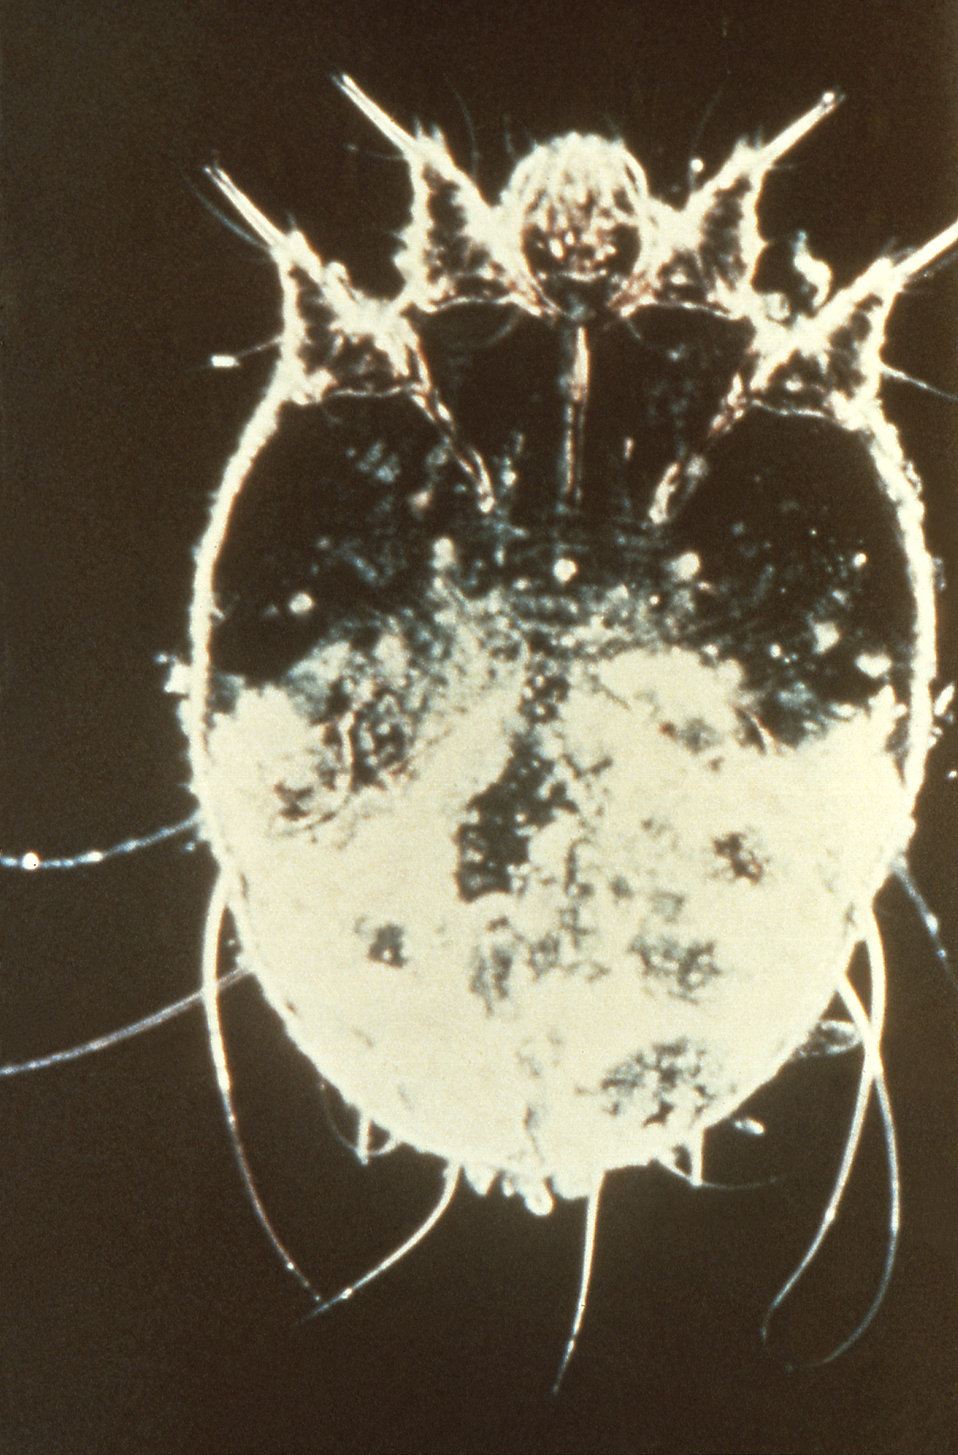 This is a Sarcoptes scabiei var. hominis or 'itch mite', often associated with the transmission of human scabies.